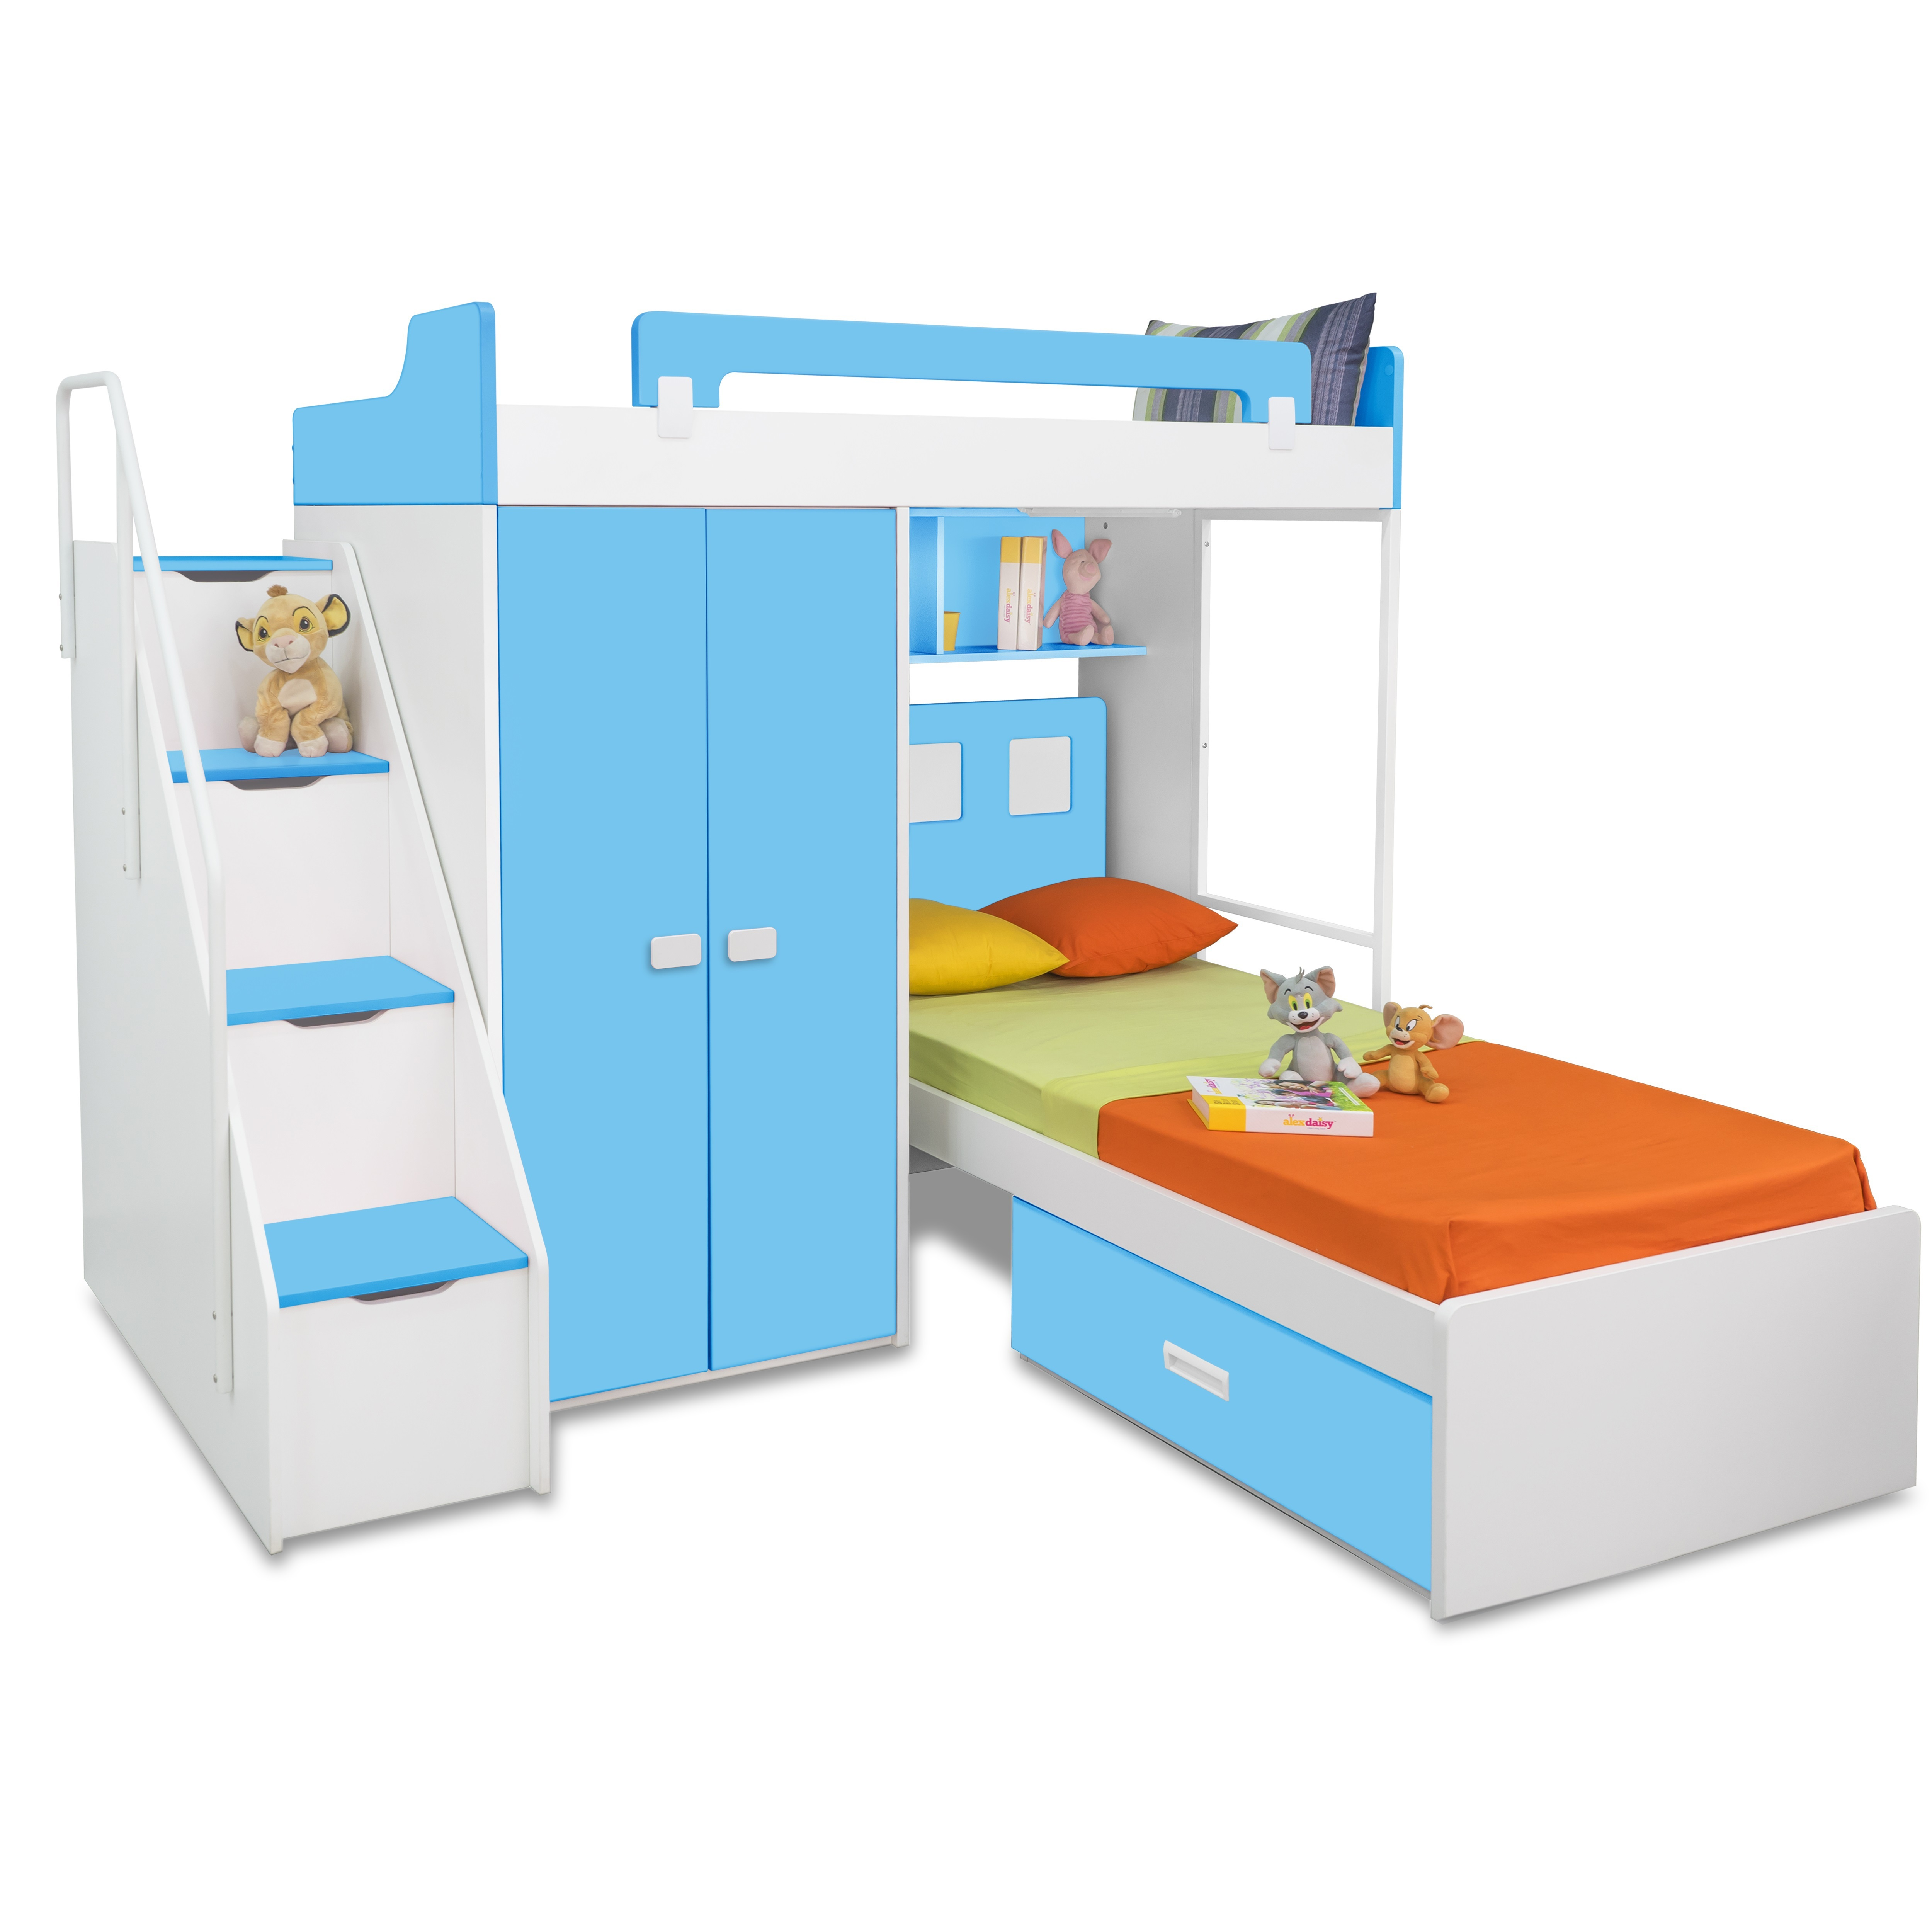 Are Bunk Beds with Slides Safe for Children